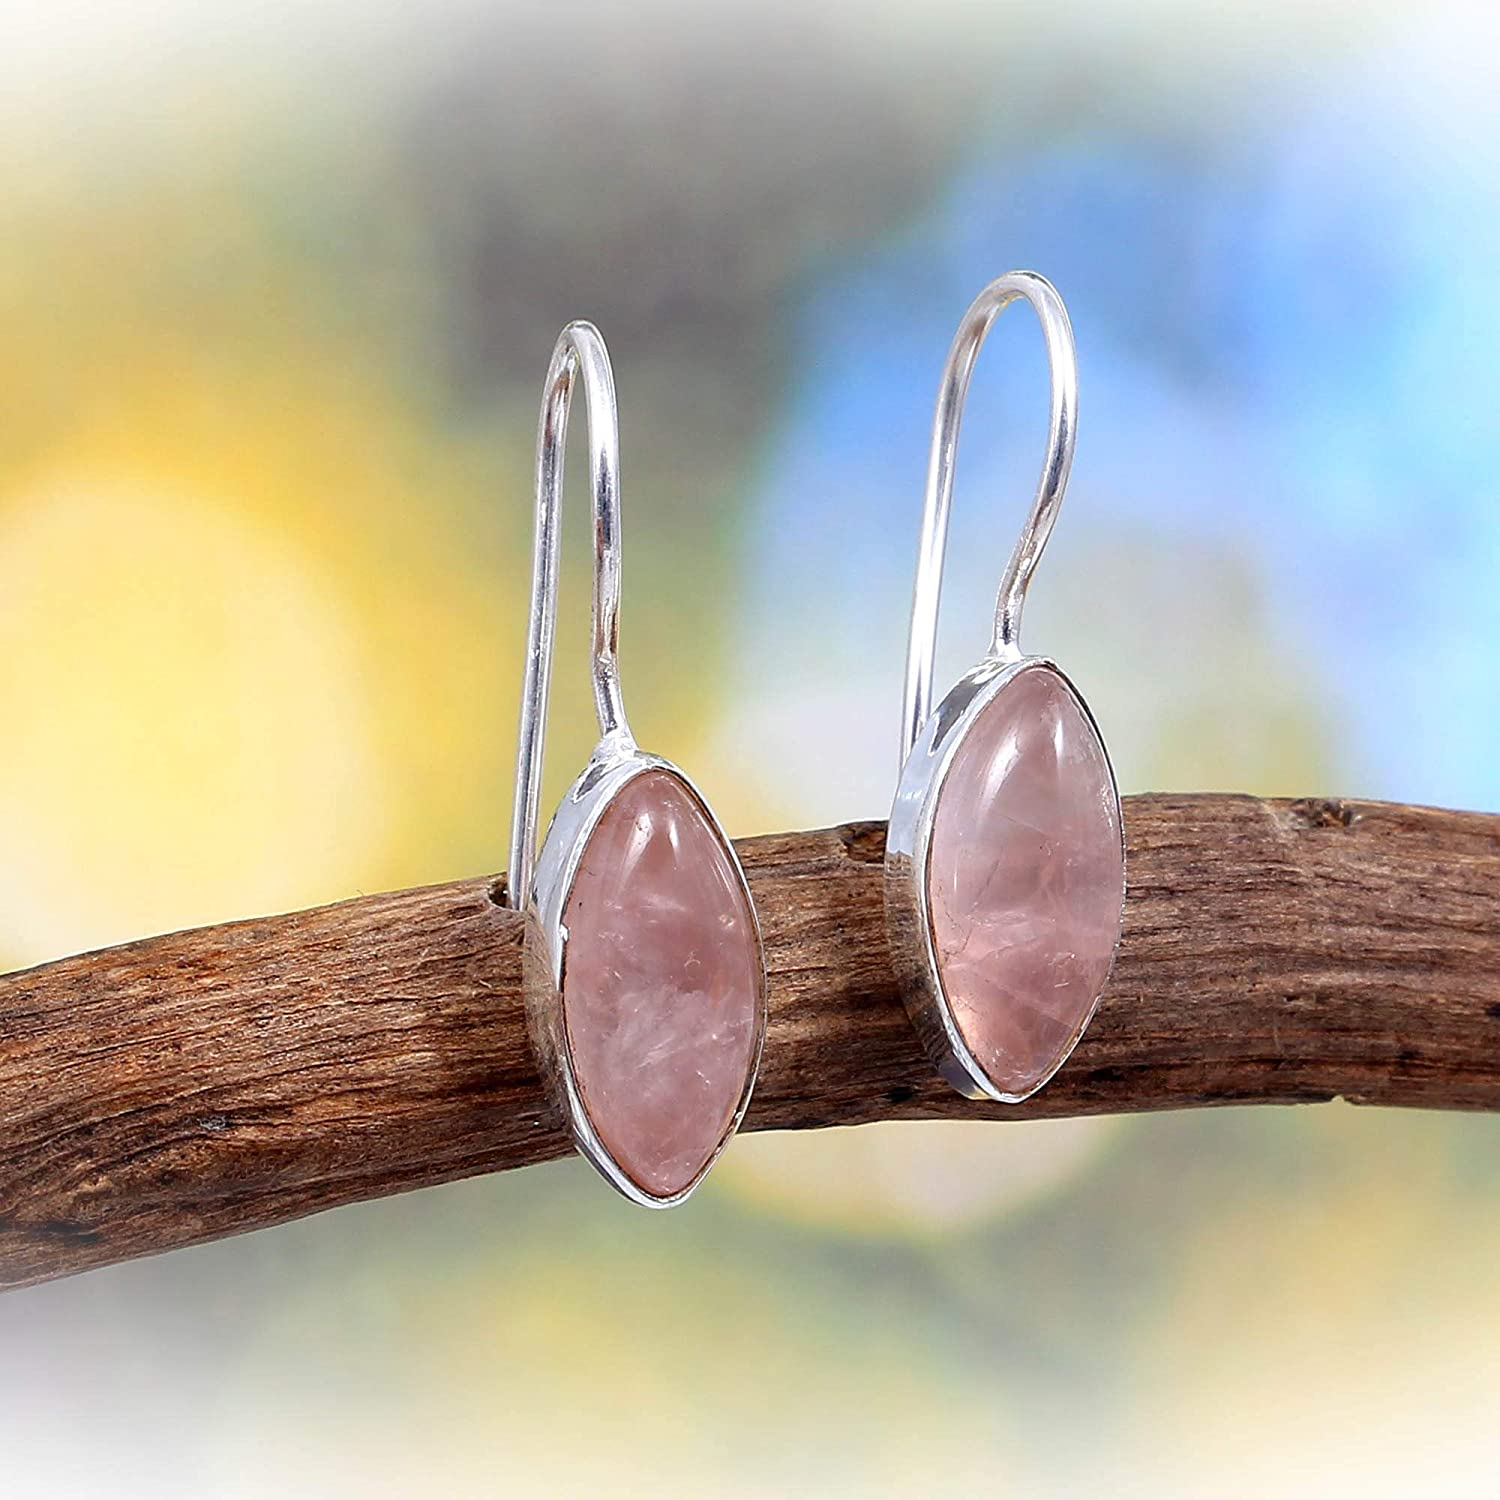 Handcrafted Designer Stylish Charm Fashion Jewelry 925 Sterling Silver Gift for Women Ladies and Girls Pink Color ❤️❤️ 100/% Authentic Natural Rose Quartz Cab ️Drop Earrings ❤️❤️